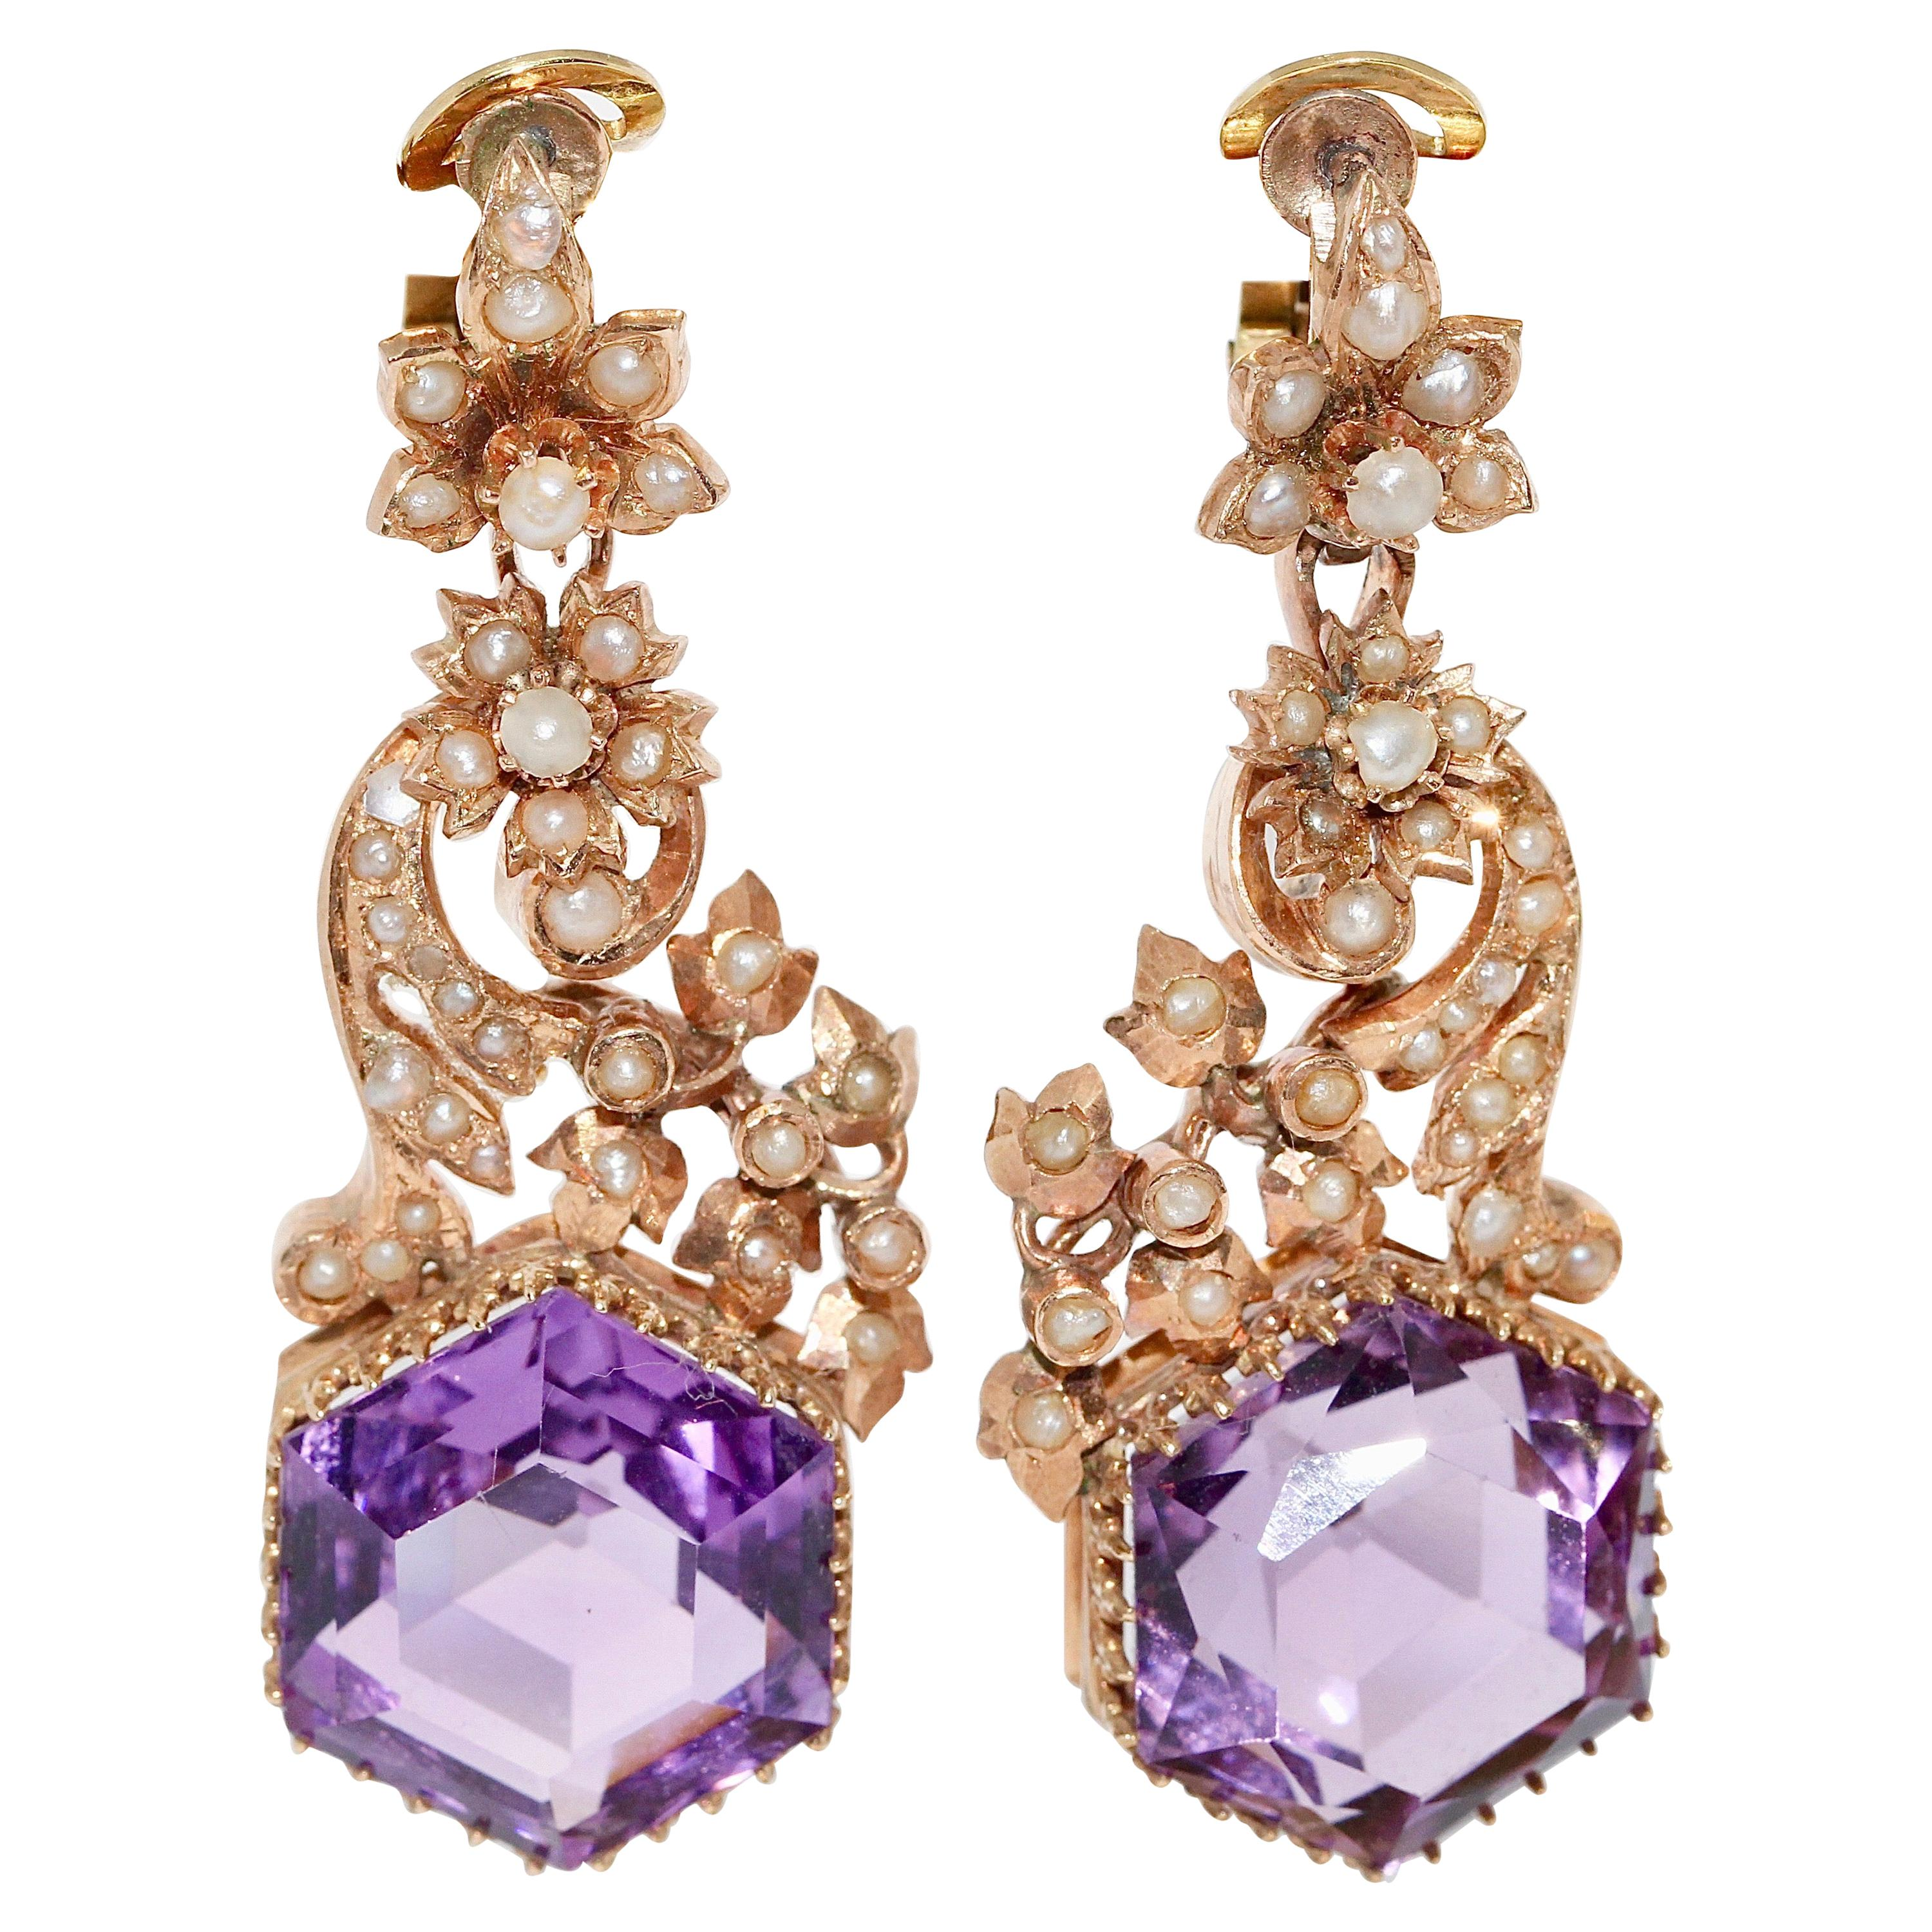 Antique Victorian Amethyst Earrings with Natural Pearls, 14 Karat Rose Gold